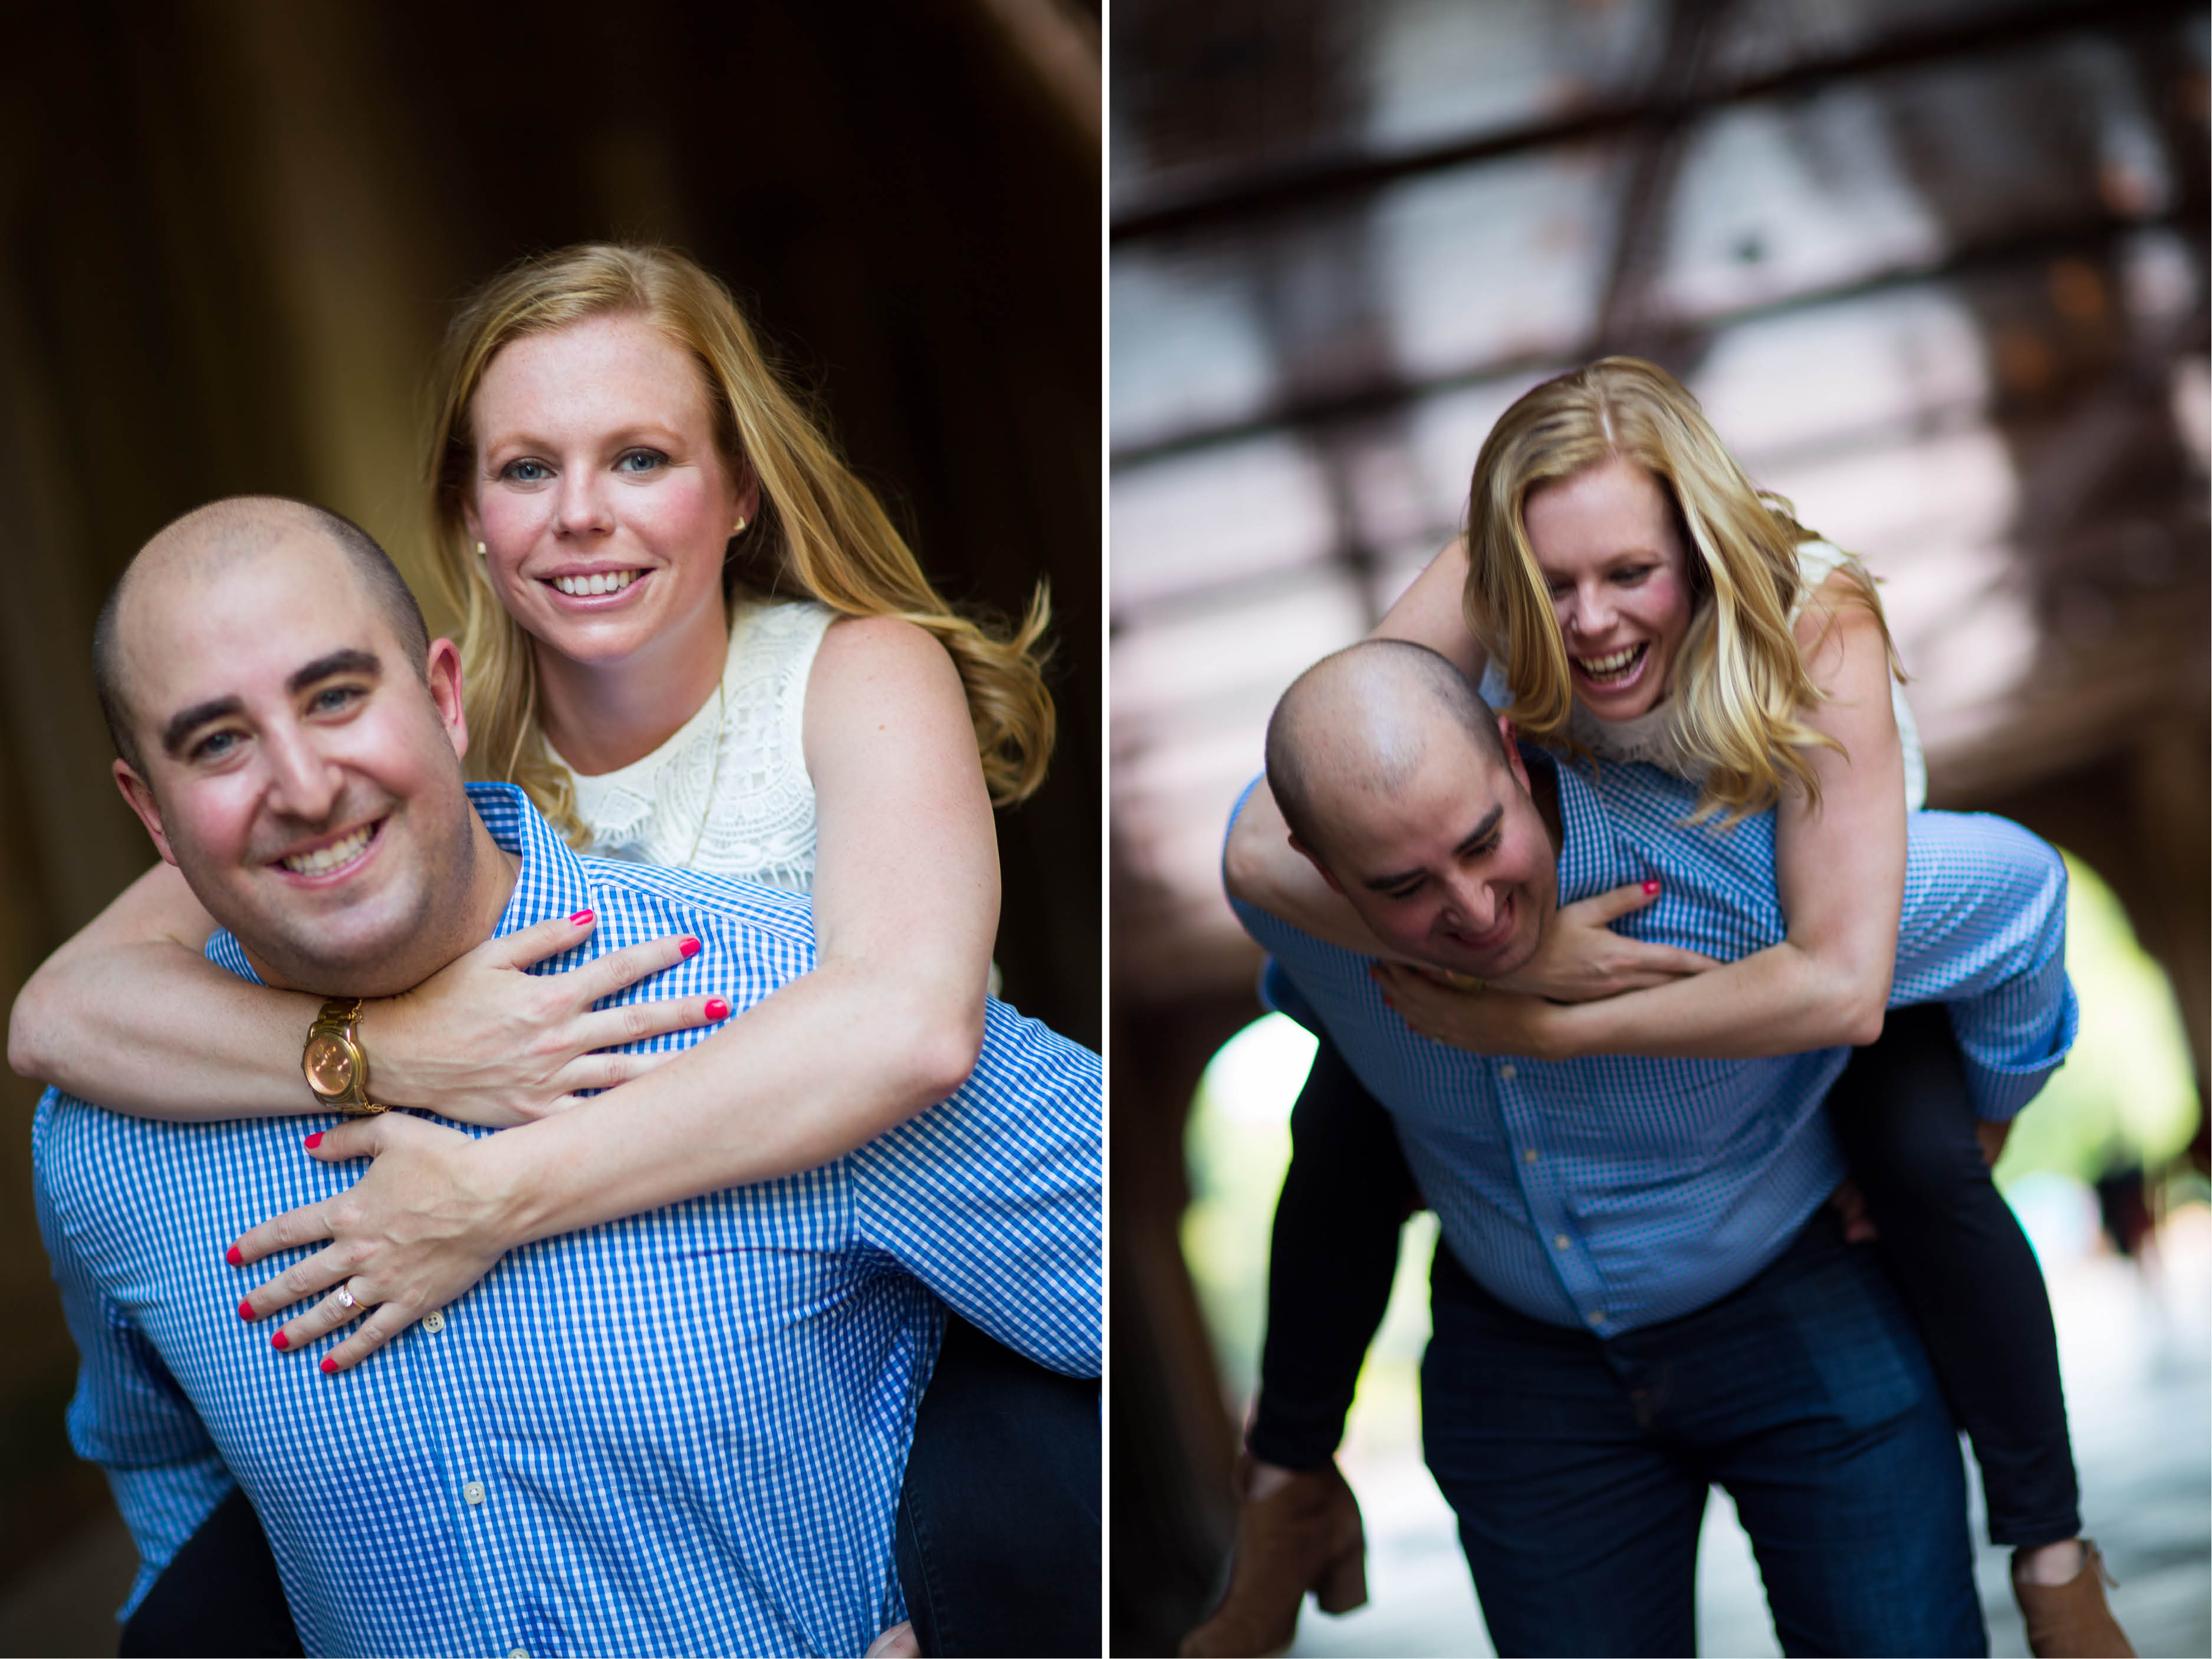 Emma_cleary_photography Central park engagement6